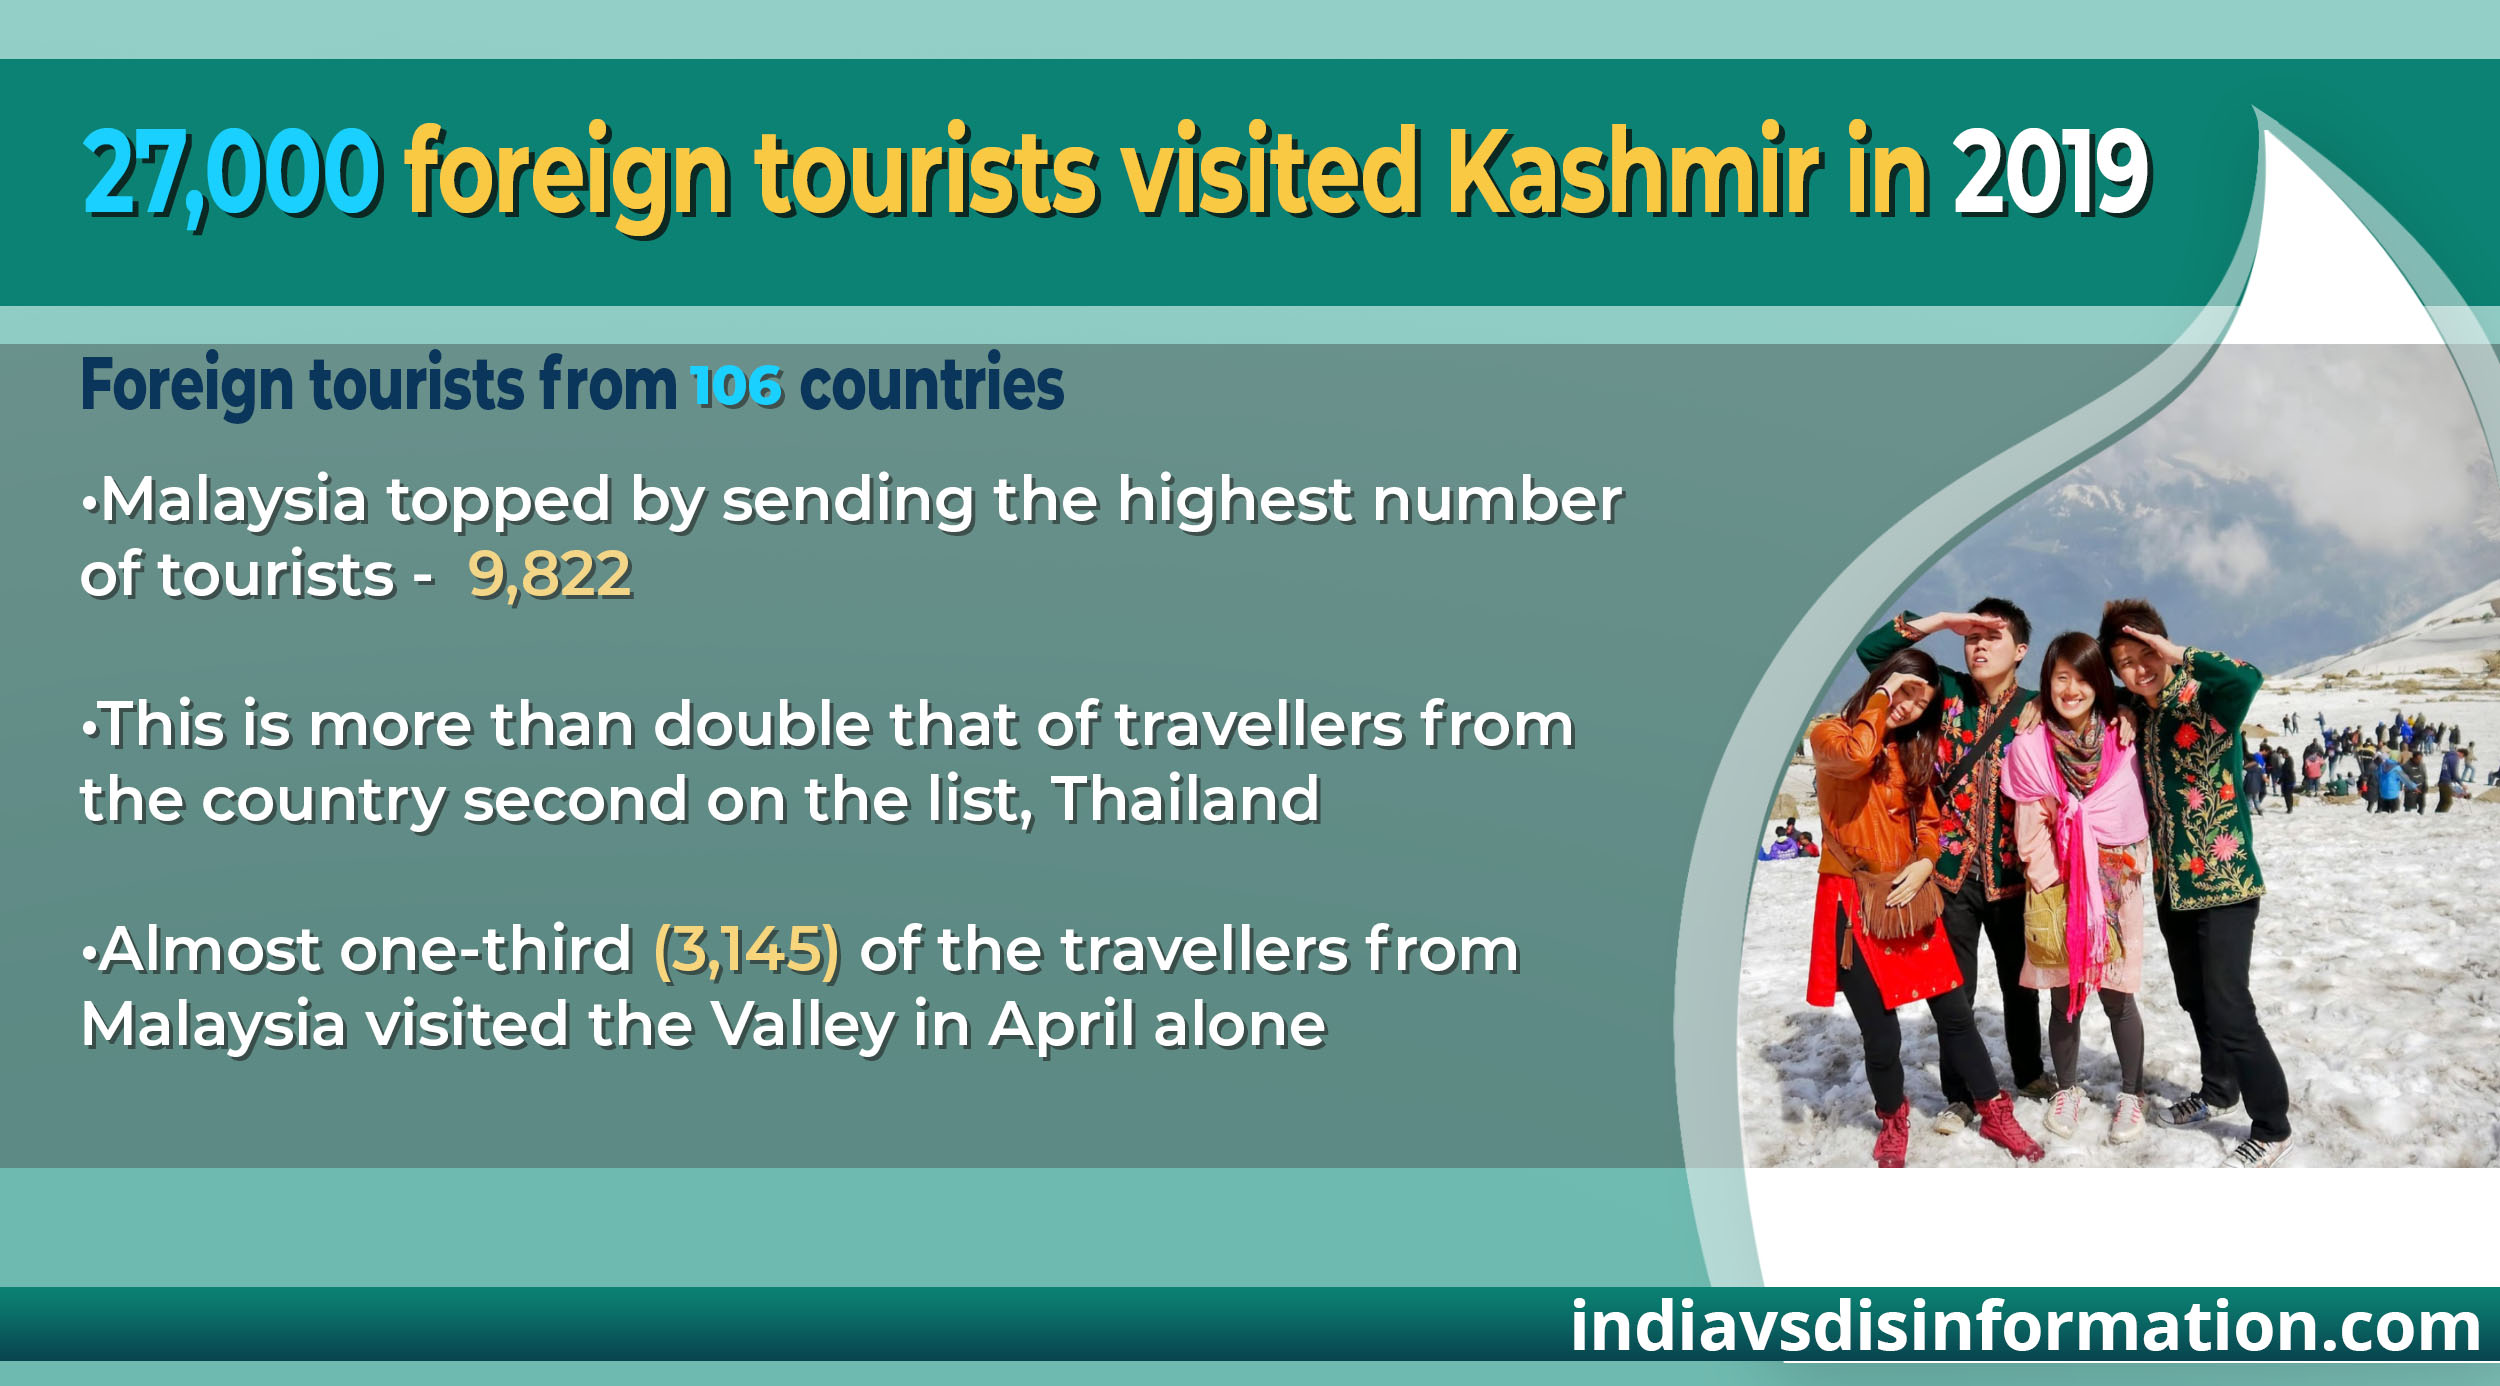 27,000 foreign tourists visited J&K in 2019